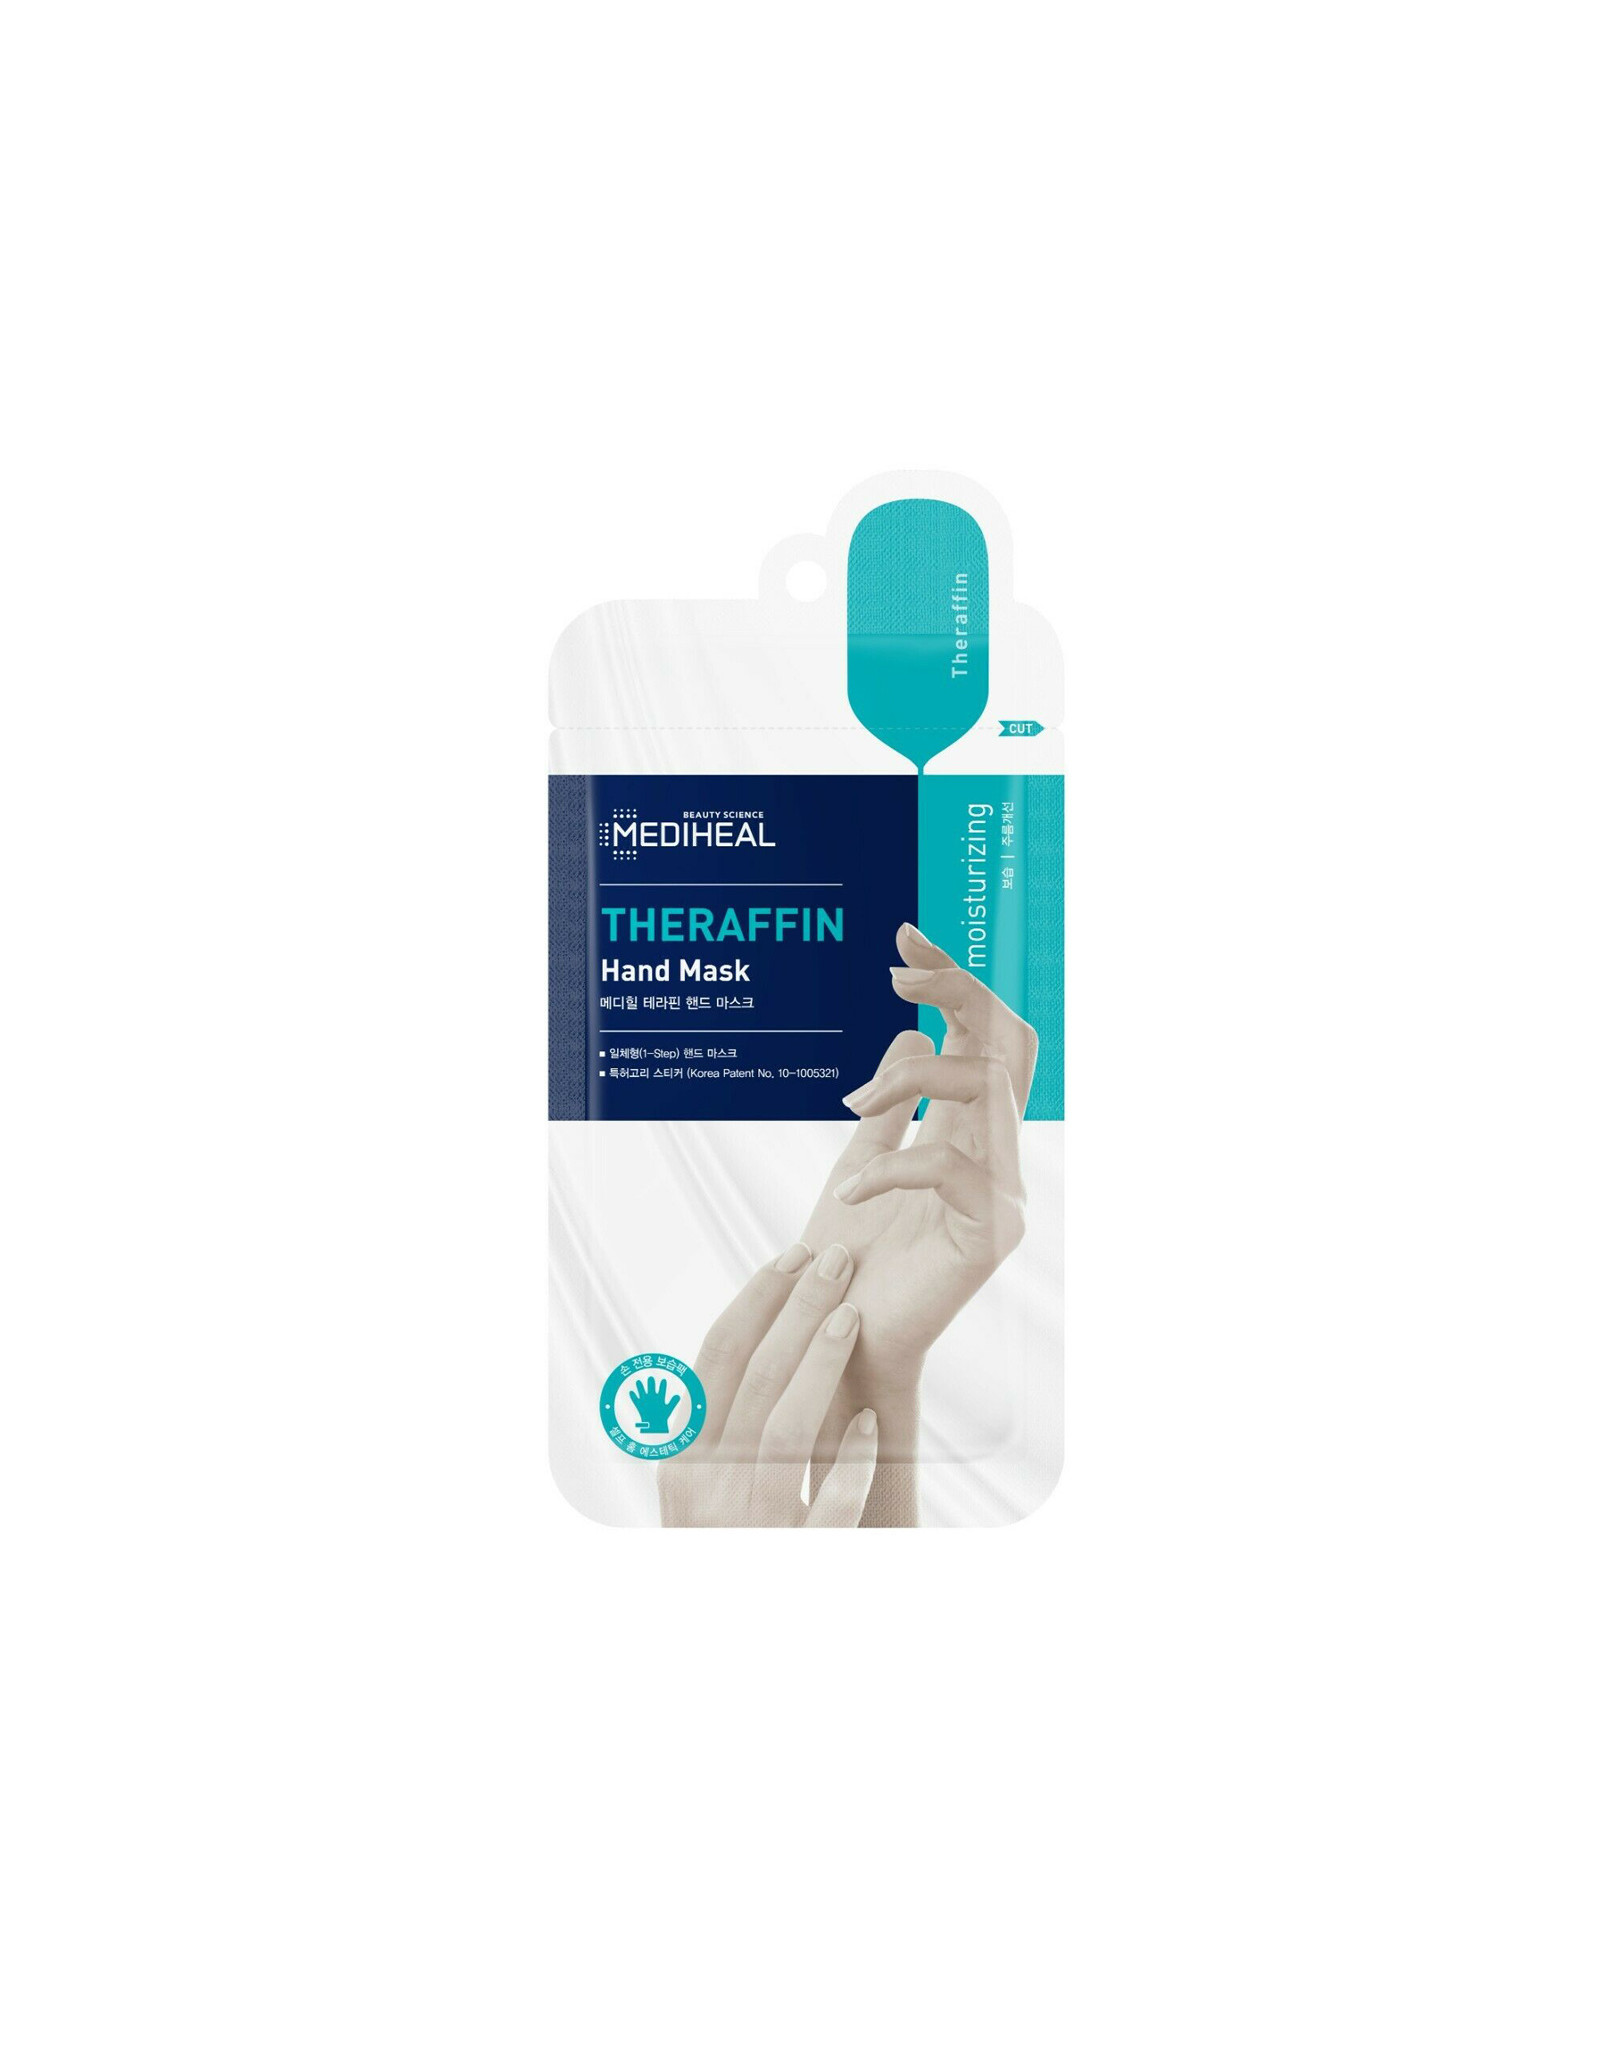 Mediheal Mediheal Theraffin Hand Mask